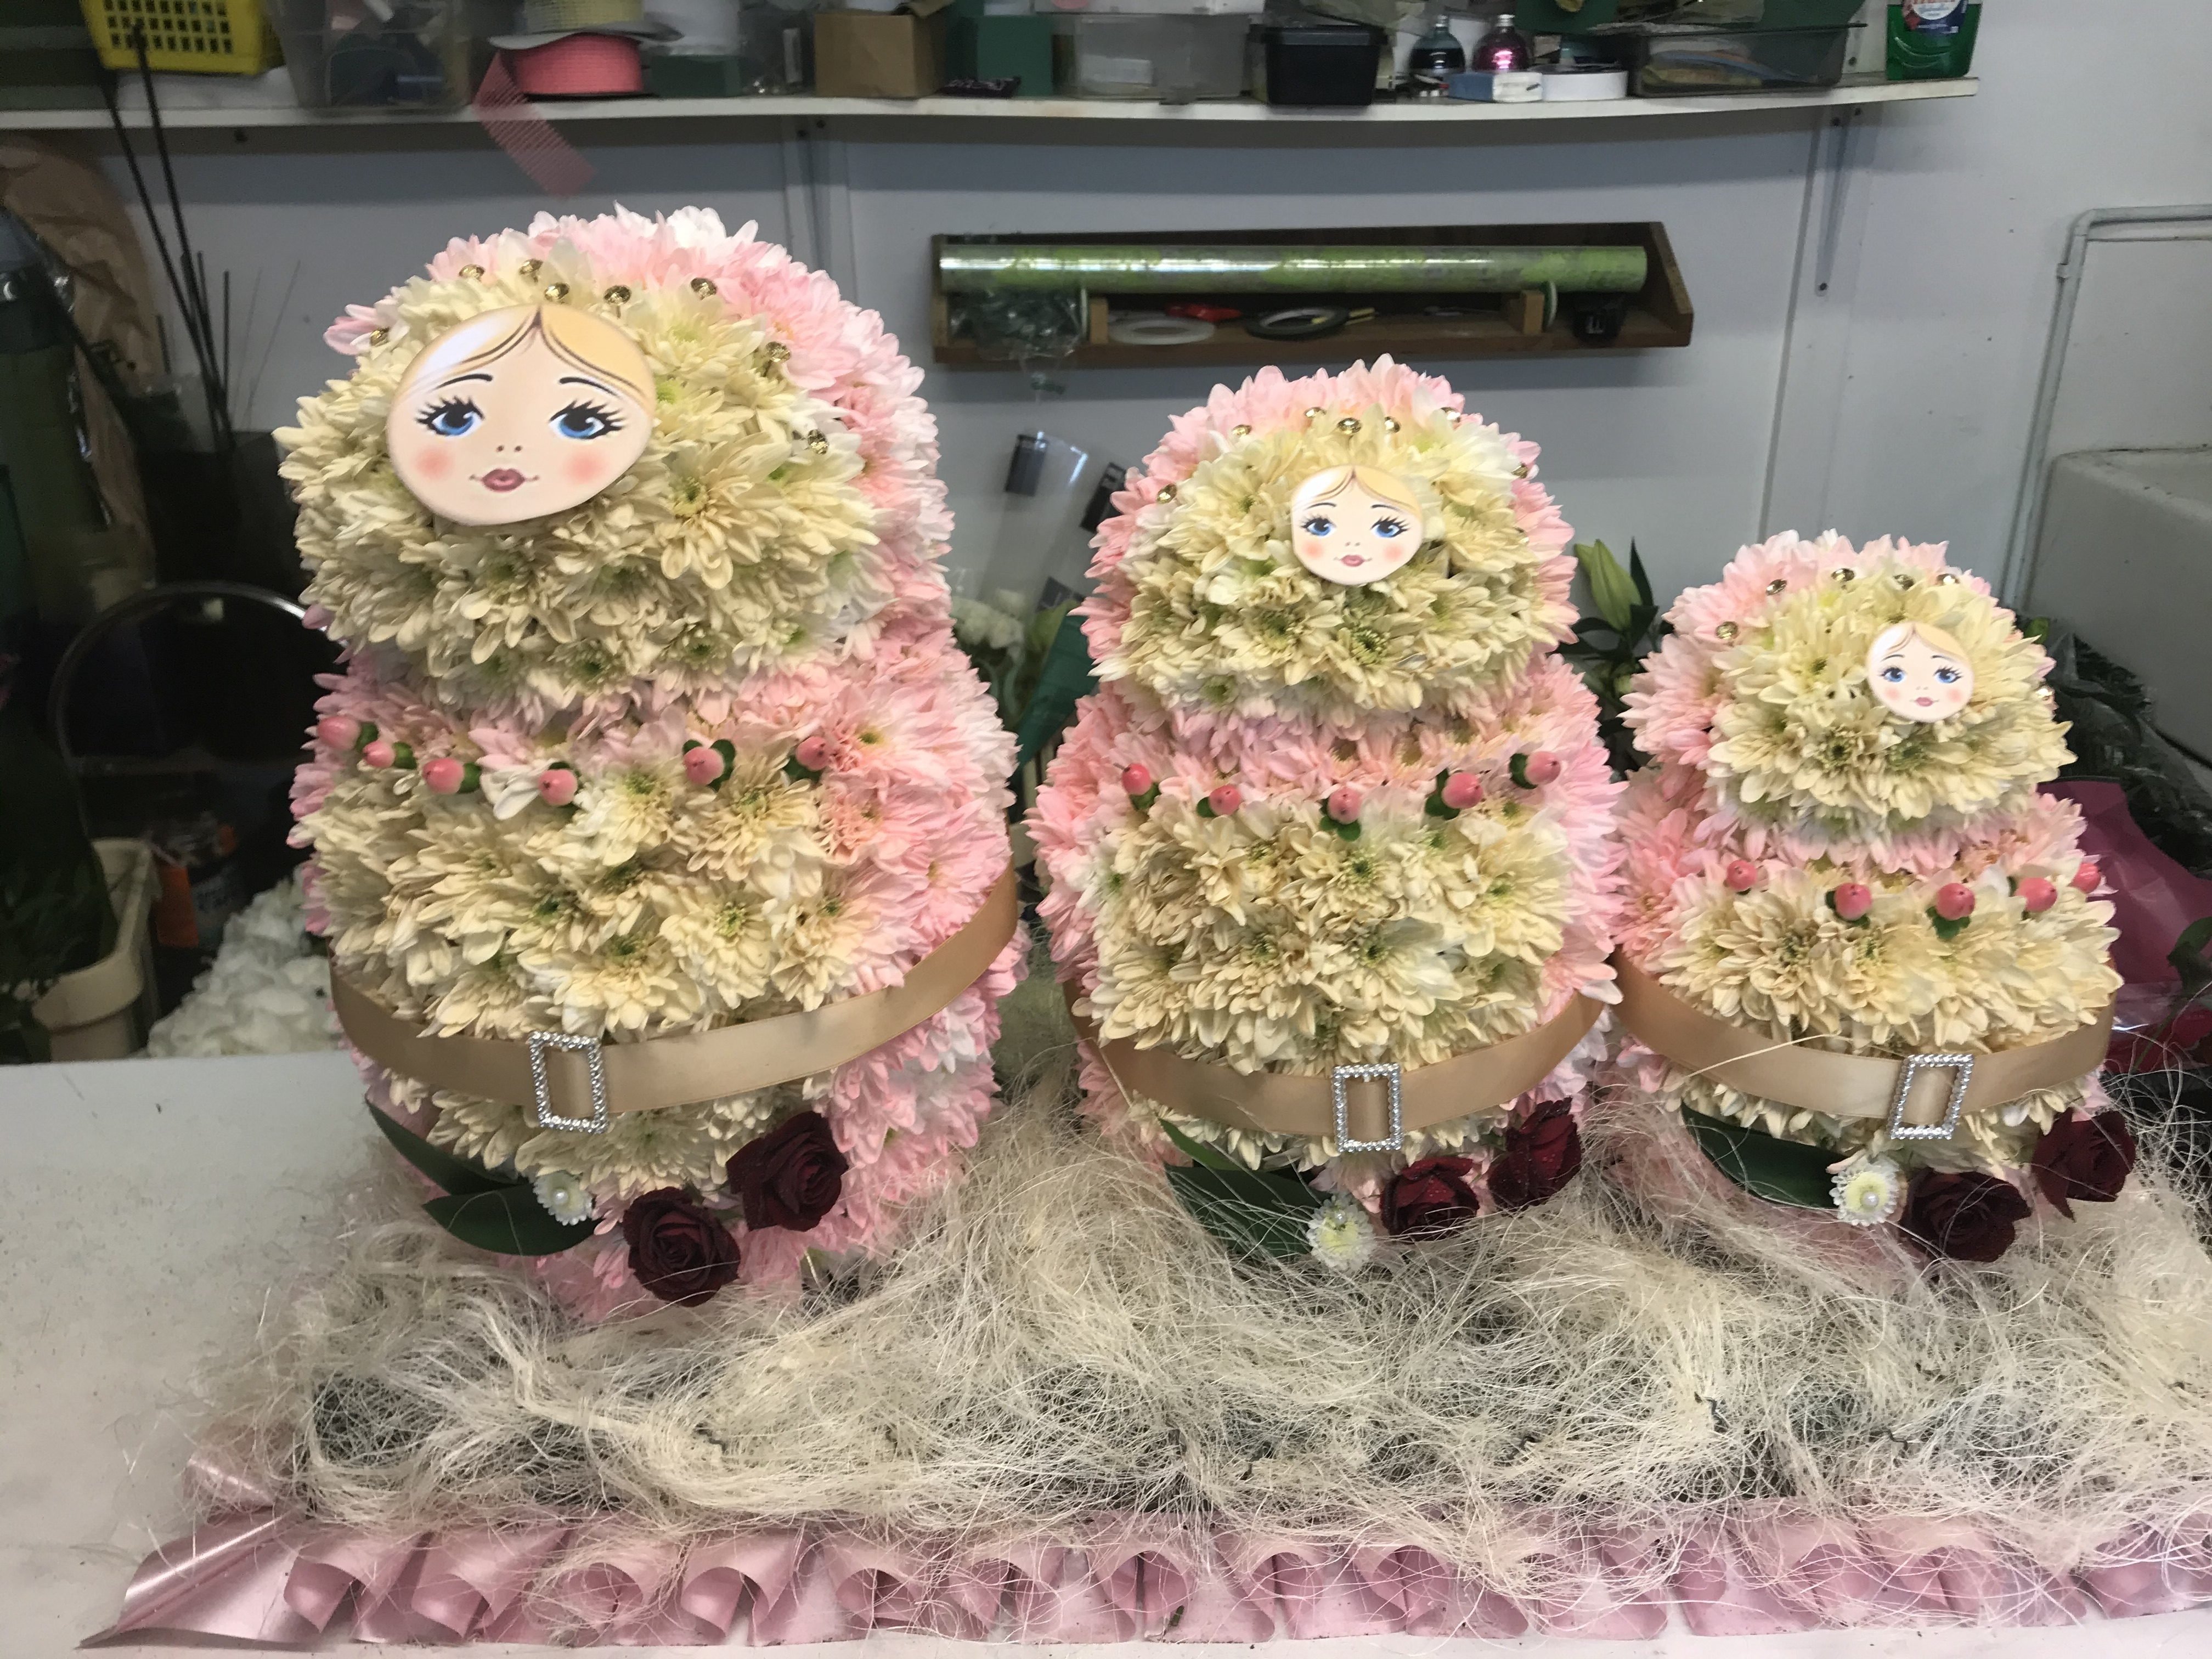 Russian Dolls made from flowers